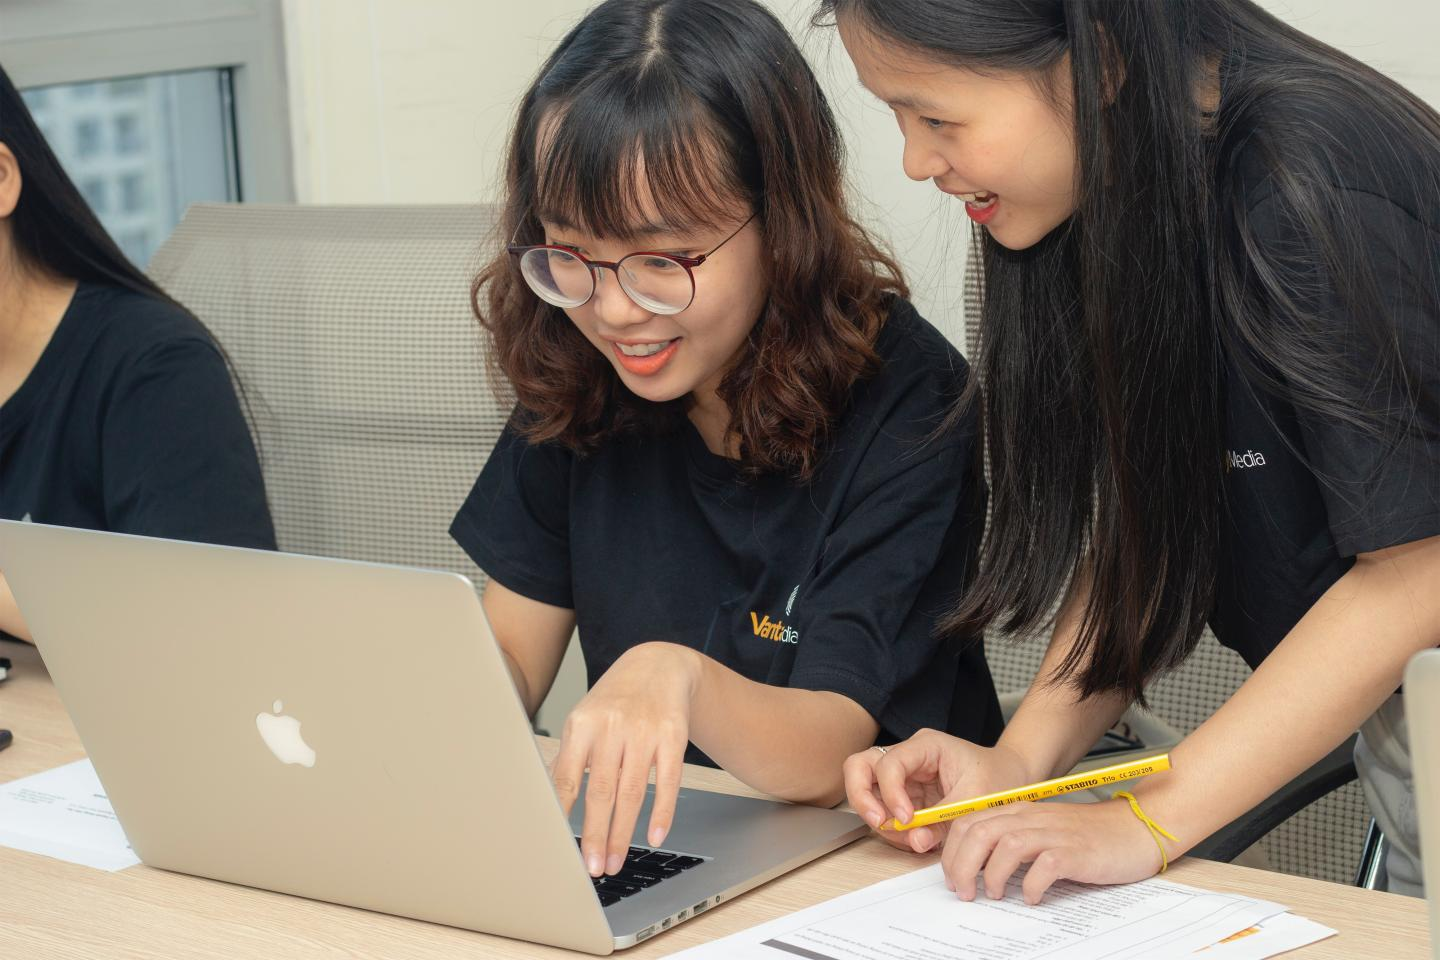 2 young women are working together, looking at the screen of the MacBook on the desk.